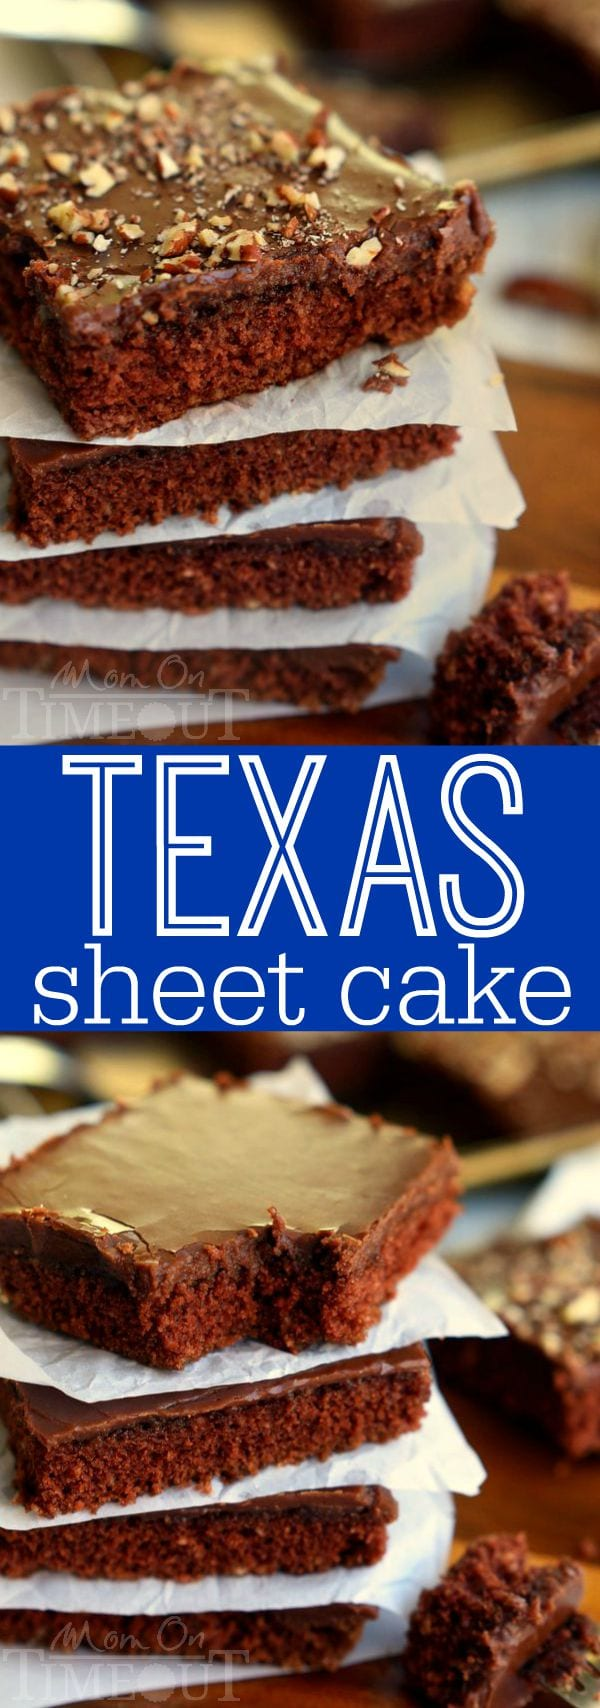 texas-sheet-cake-recipe-collage